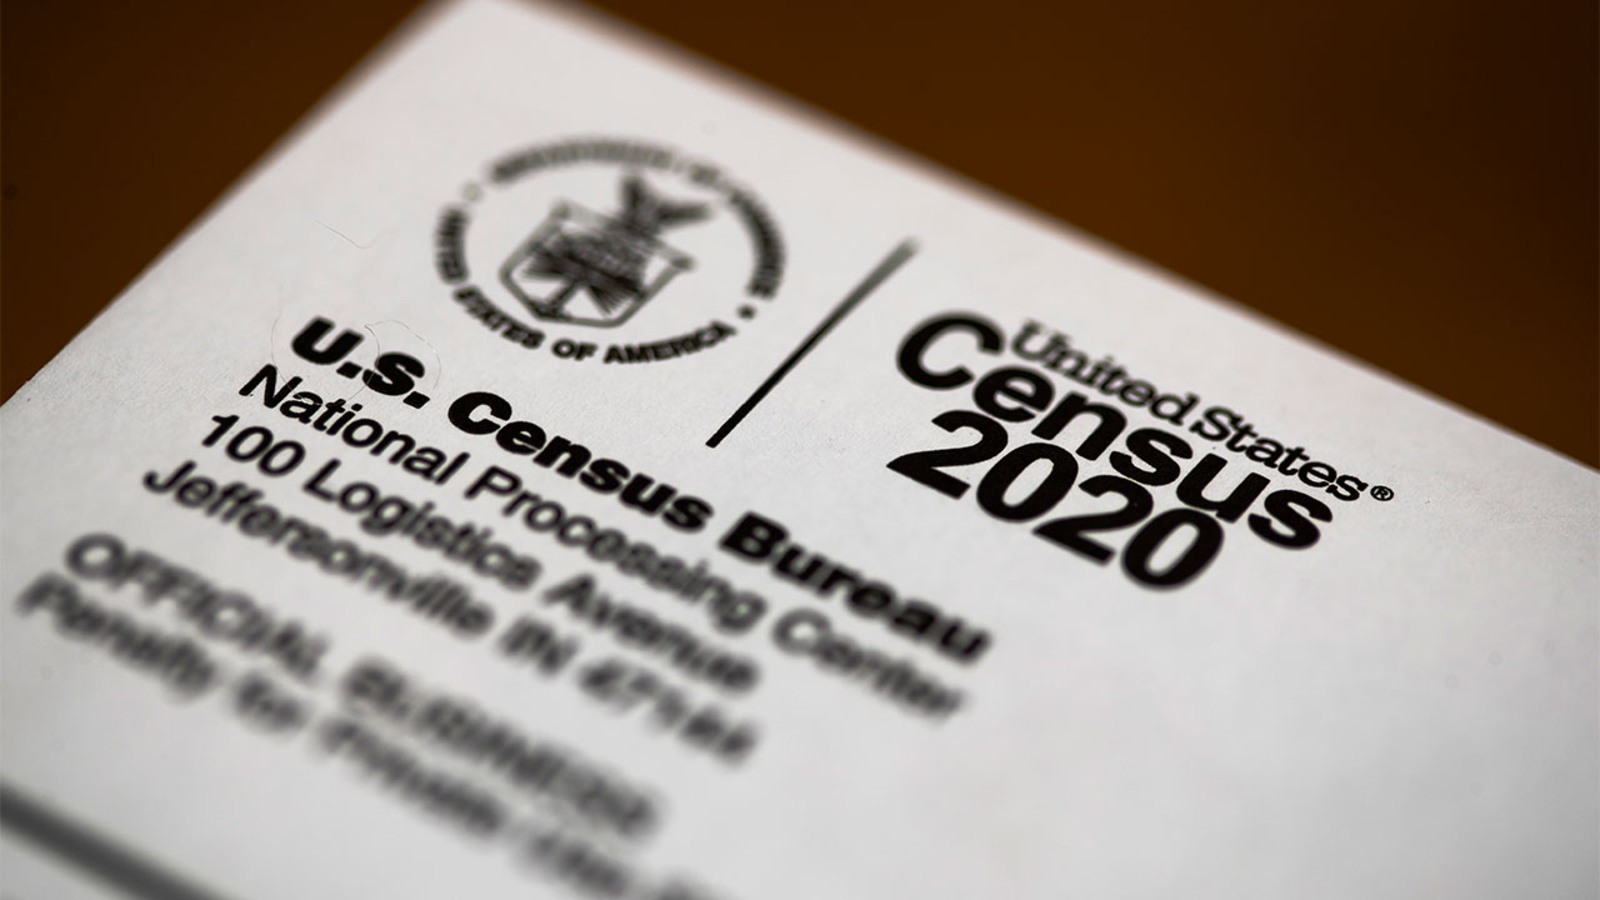 census 2020 - photo #17